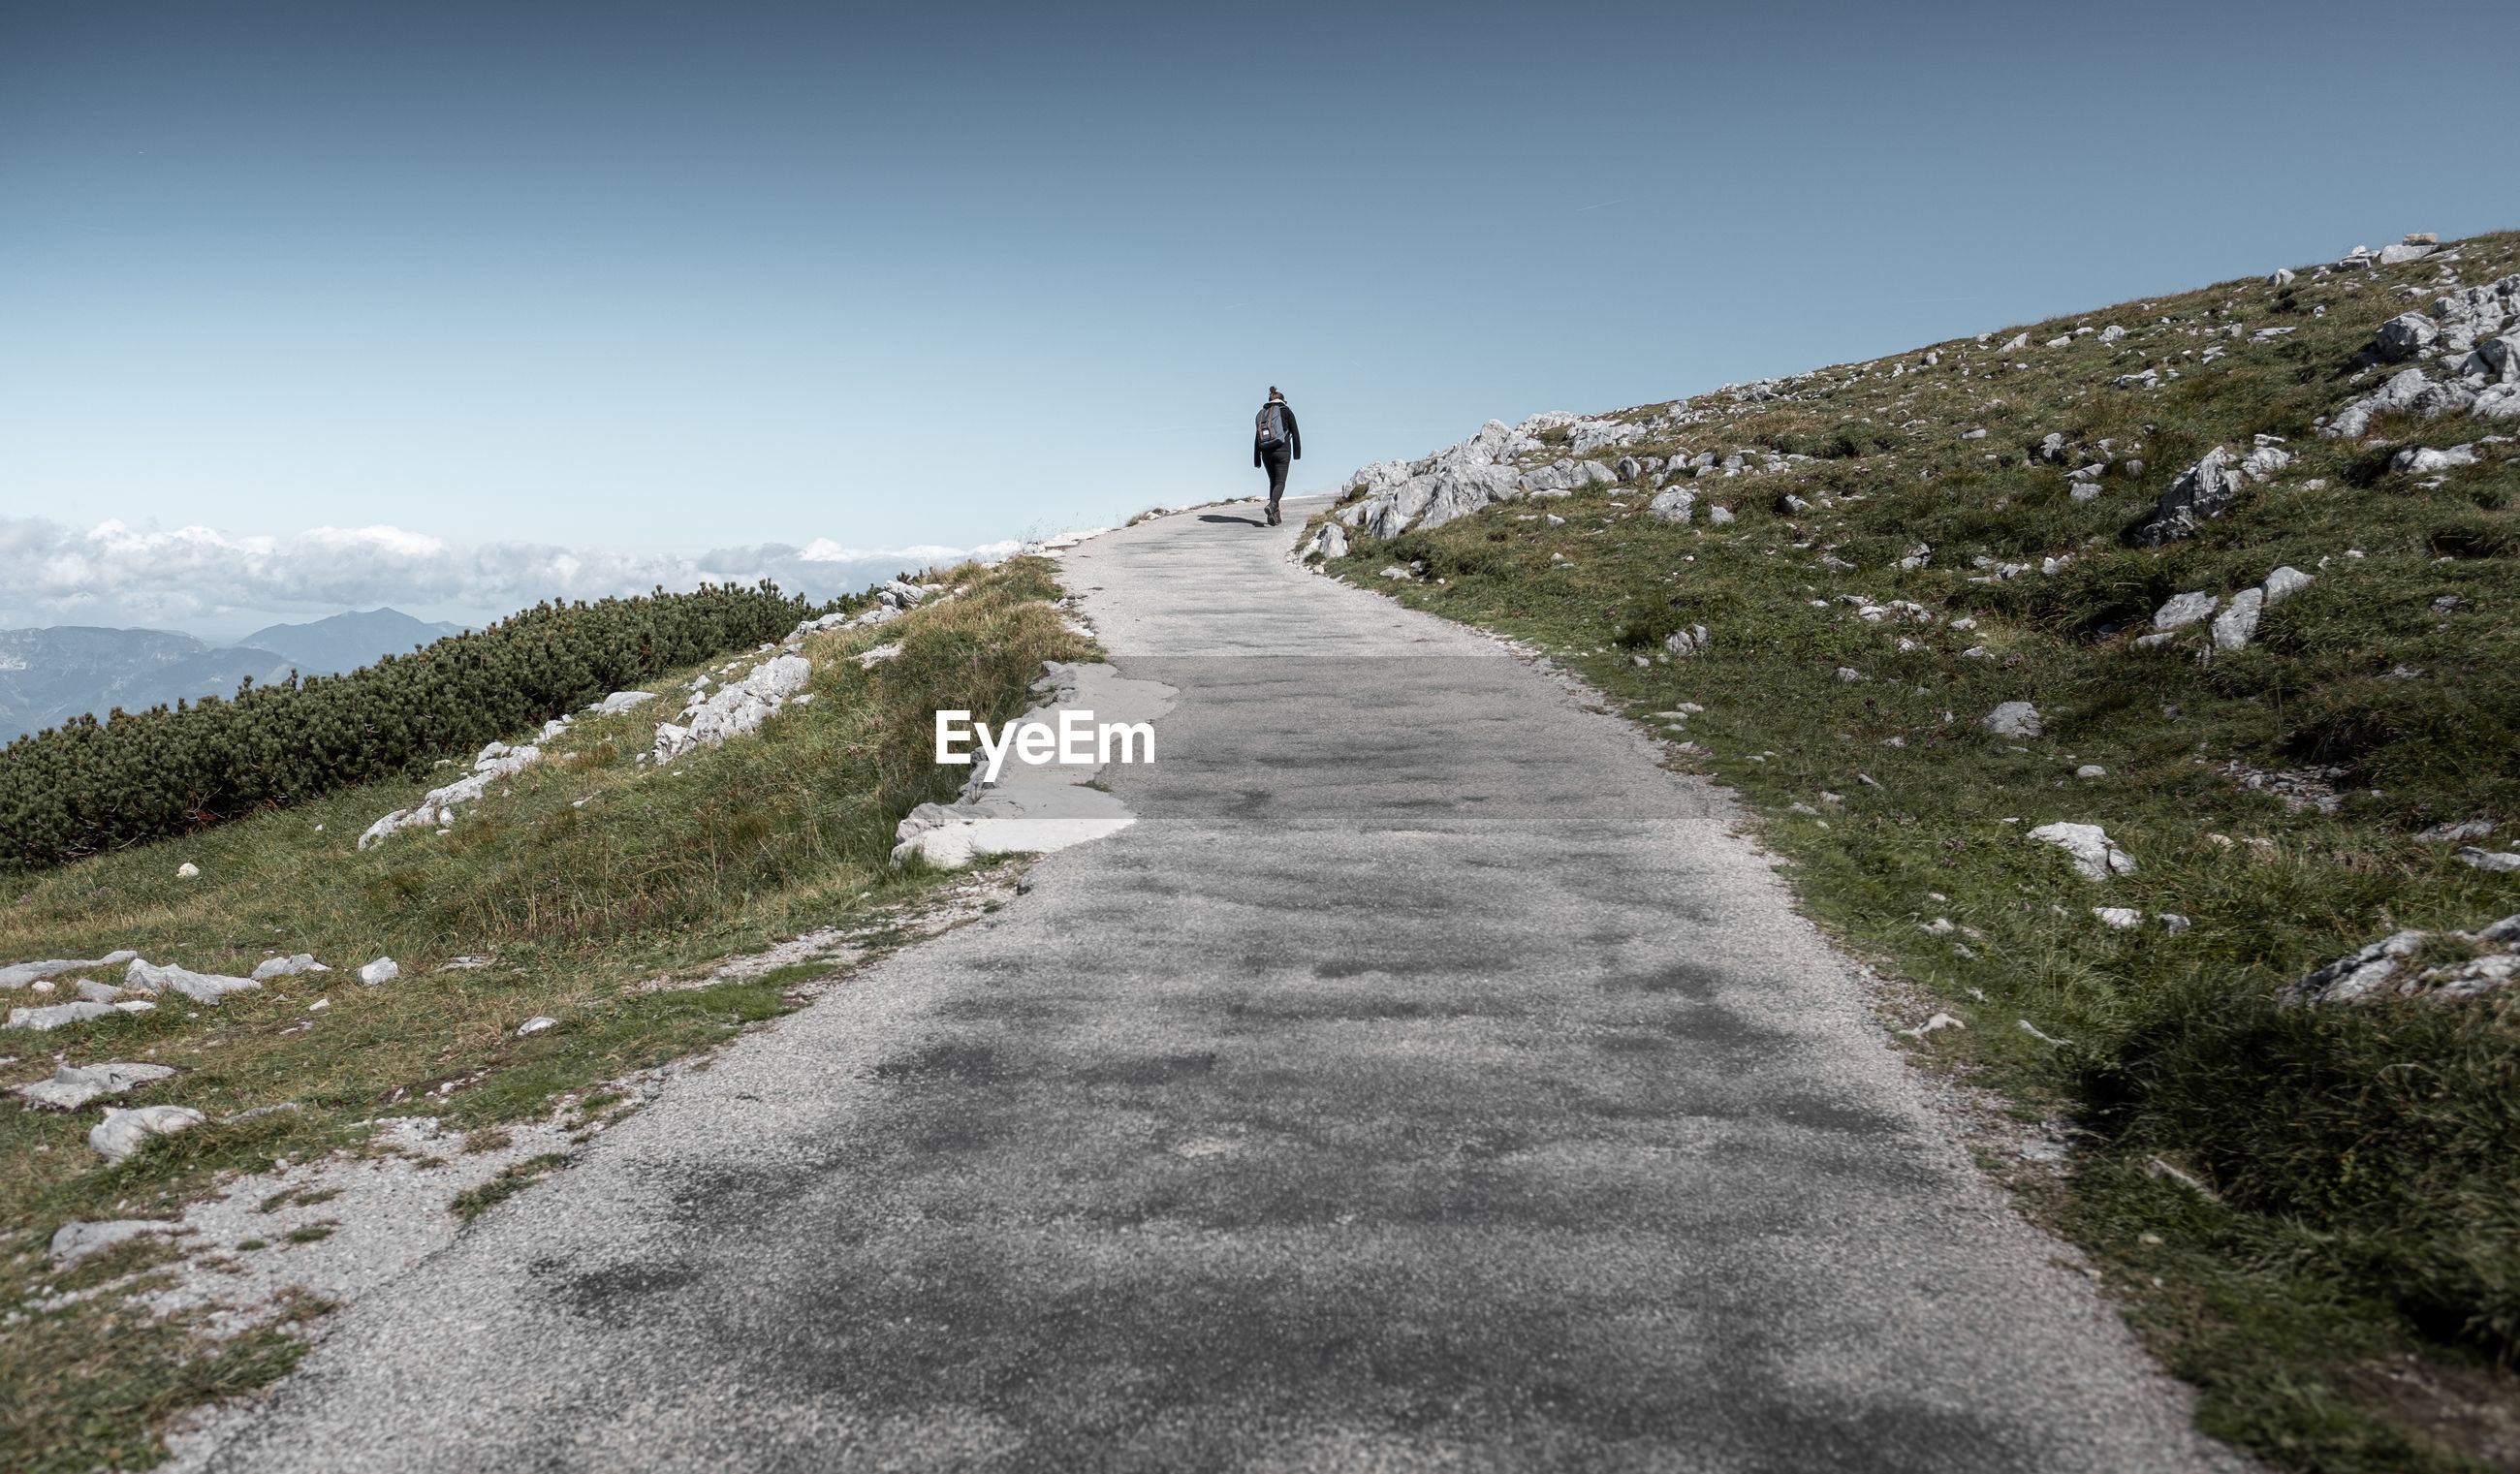 Rear view of woman walking on road on hill against sky